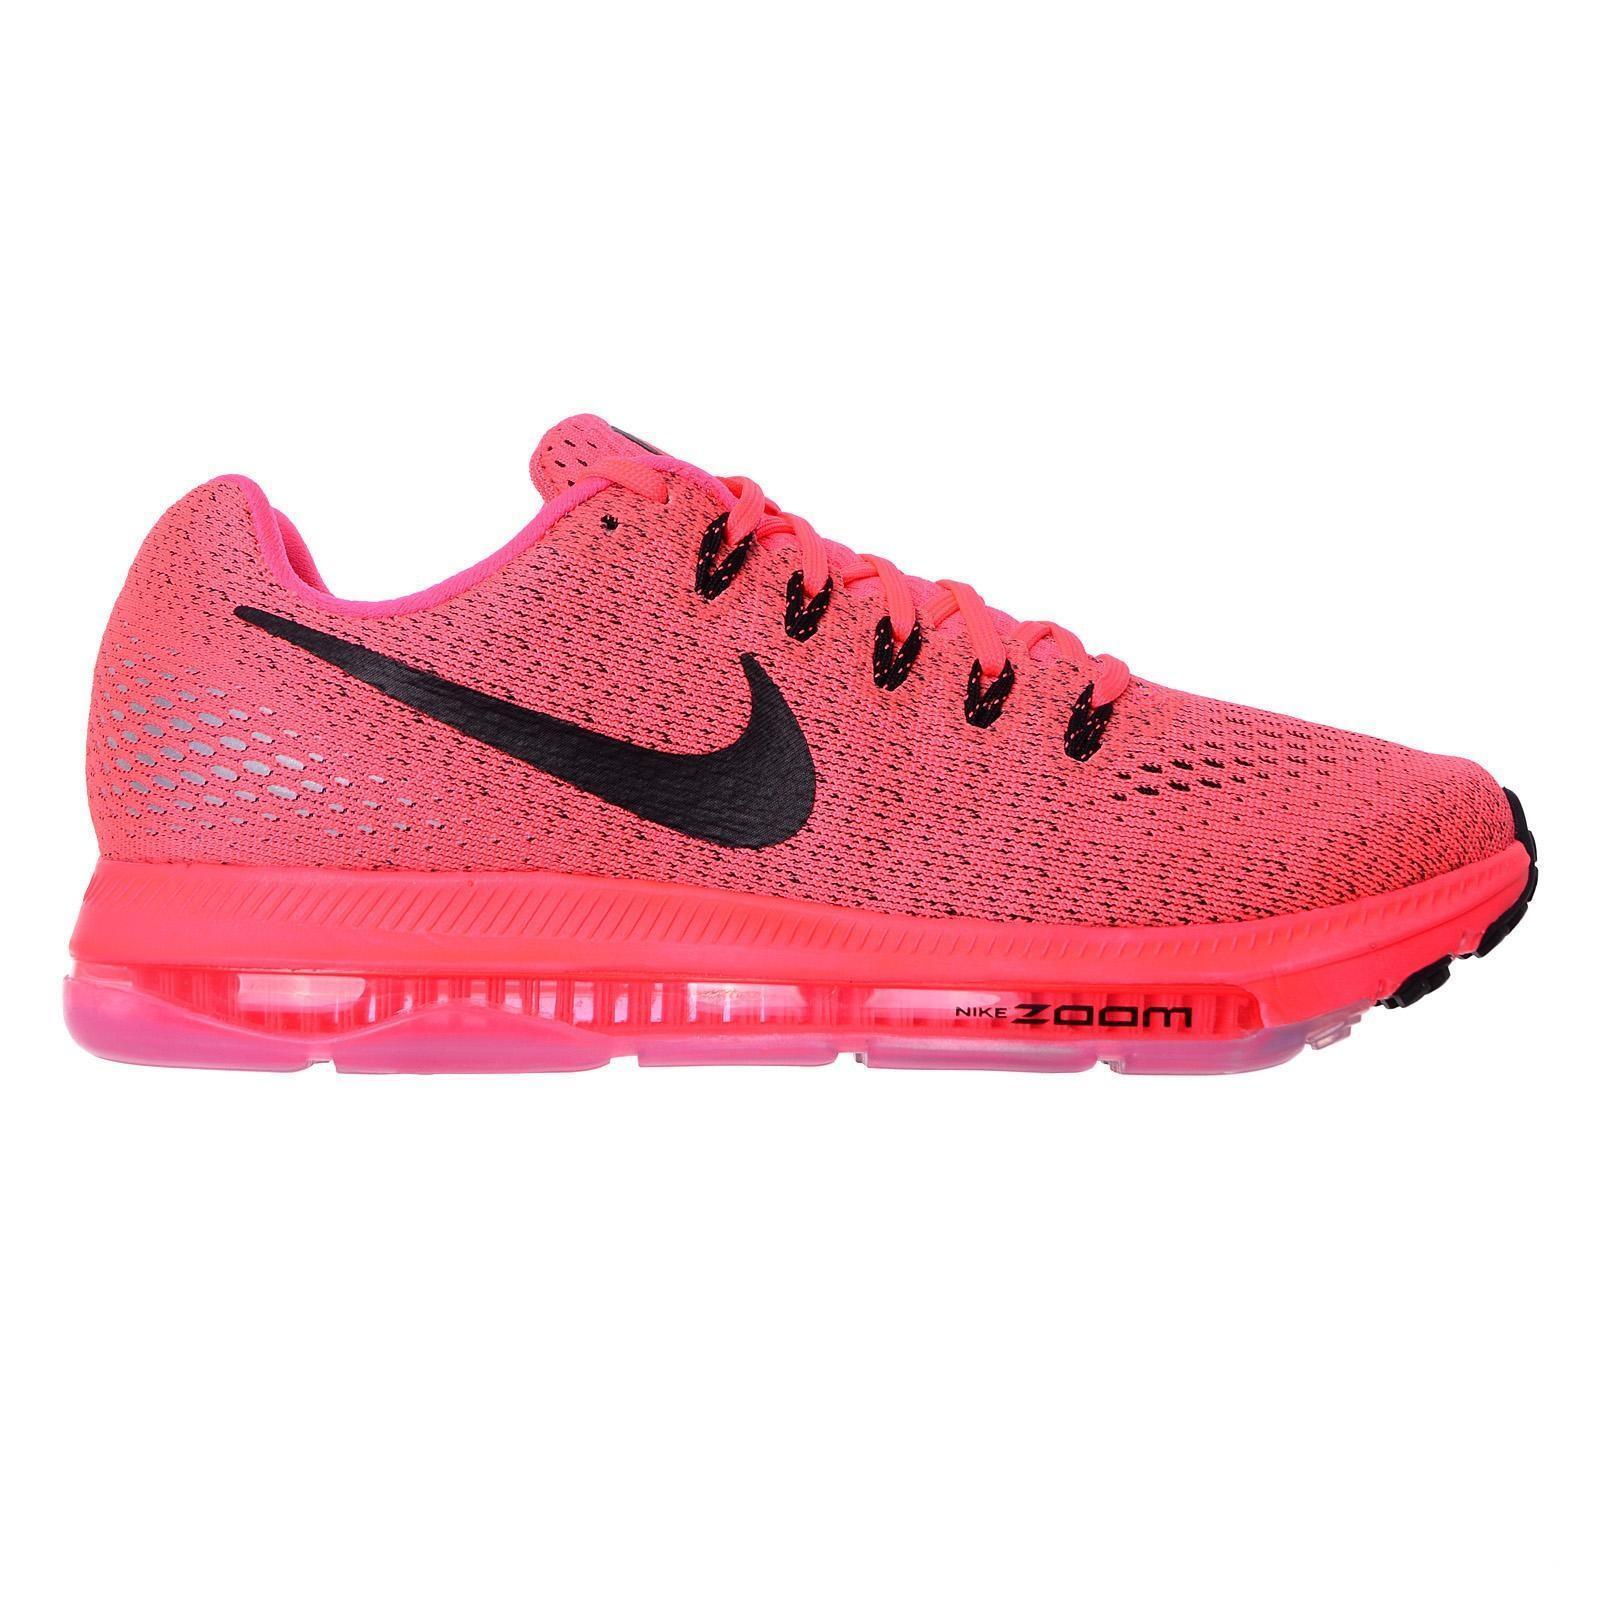 Femme Nike Zoom All Out faible Hot Punch Running Baskets 878671 601